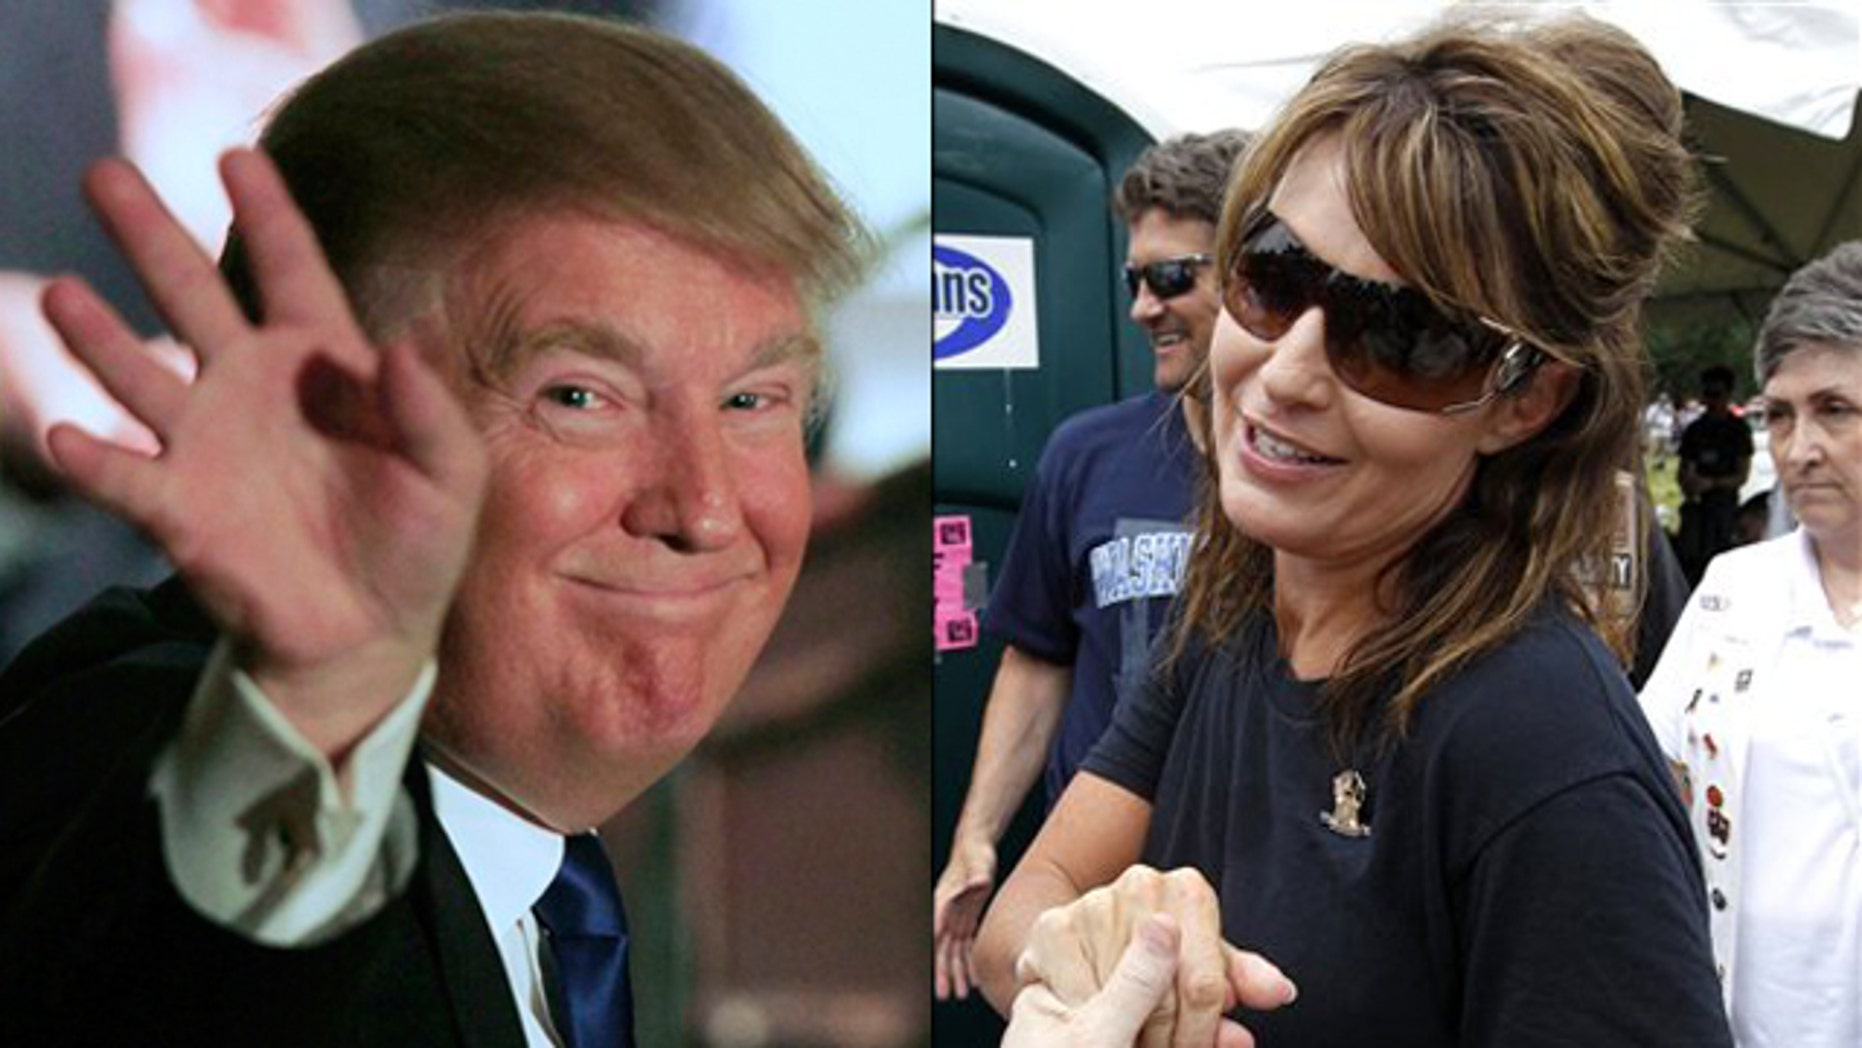 Shown here are Donald Trump, left, and former Alaska Gov. Sarah Palin.